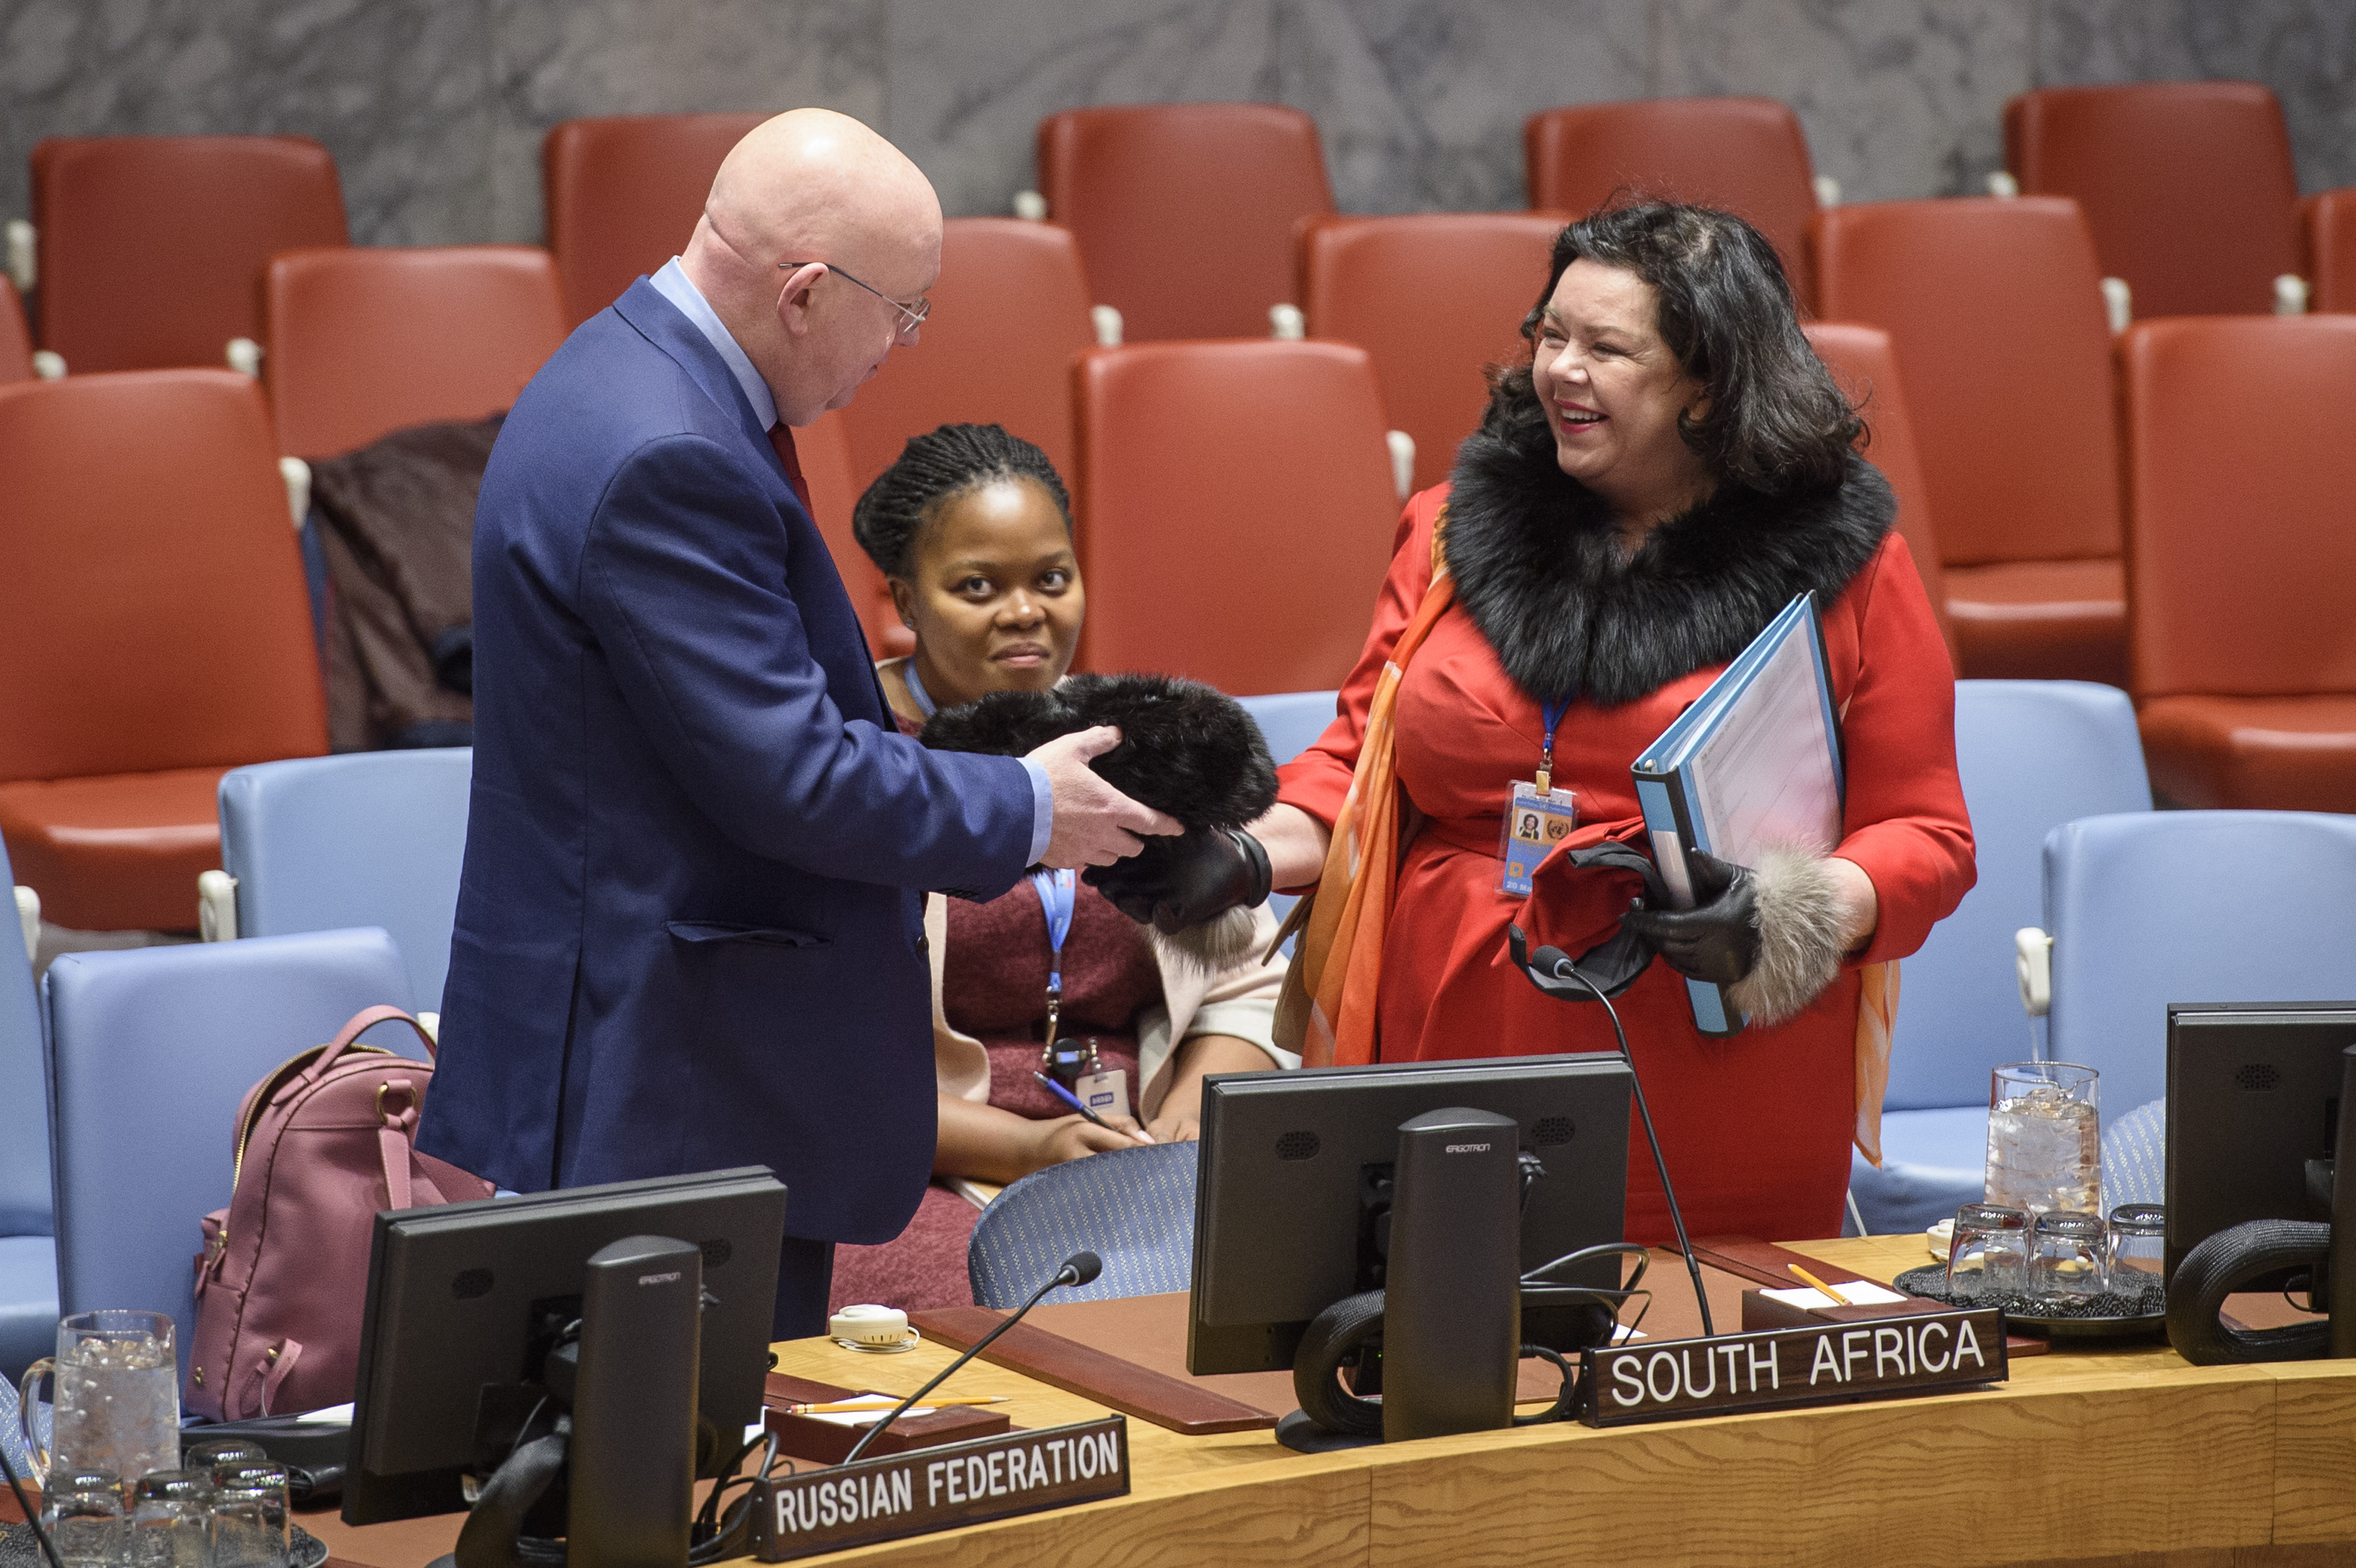 Vassily Nebenzia (left), Permanent Representative of the Russian Federation to the UN, speaks with Karen Pierce, Permanent Representative of the United Kingdom to the UN, before the Security Council meeting on the situation in Libya.